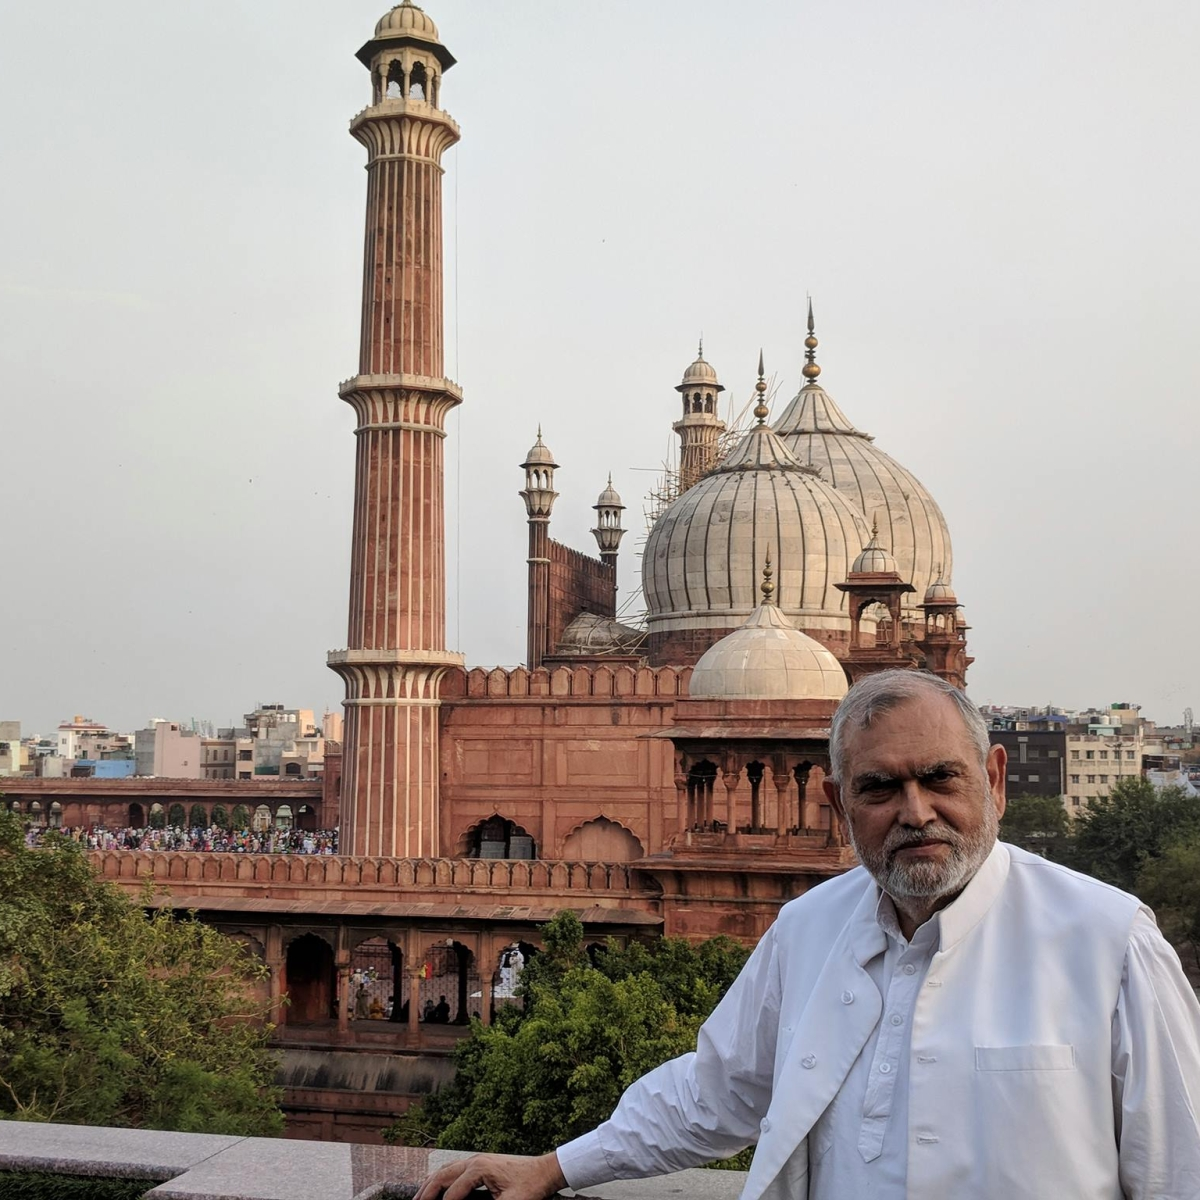 No country for free speech? Delhi Minority Commission Chairman Zafarul Islam Khan charged with sedition